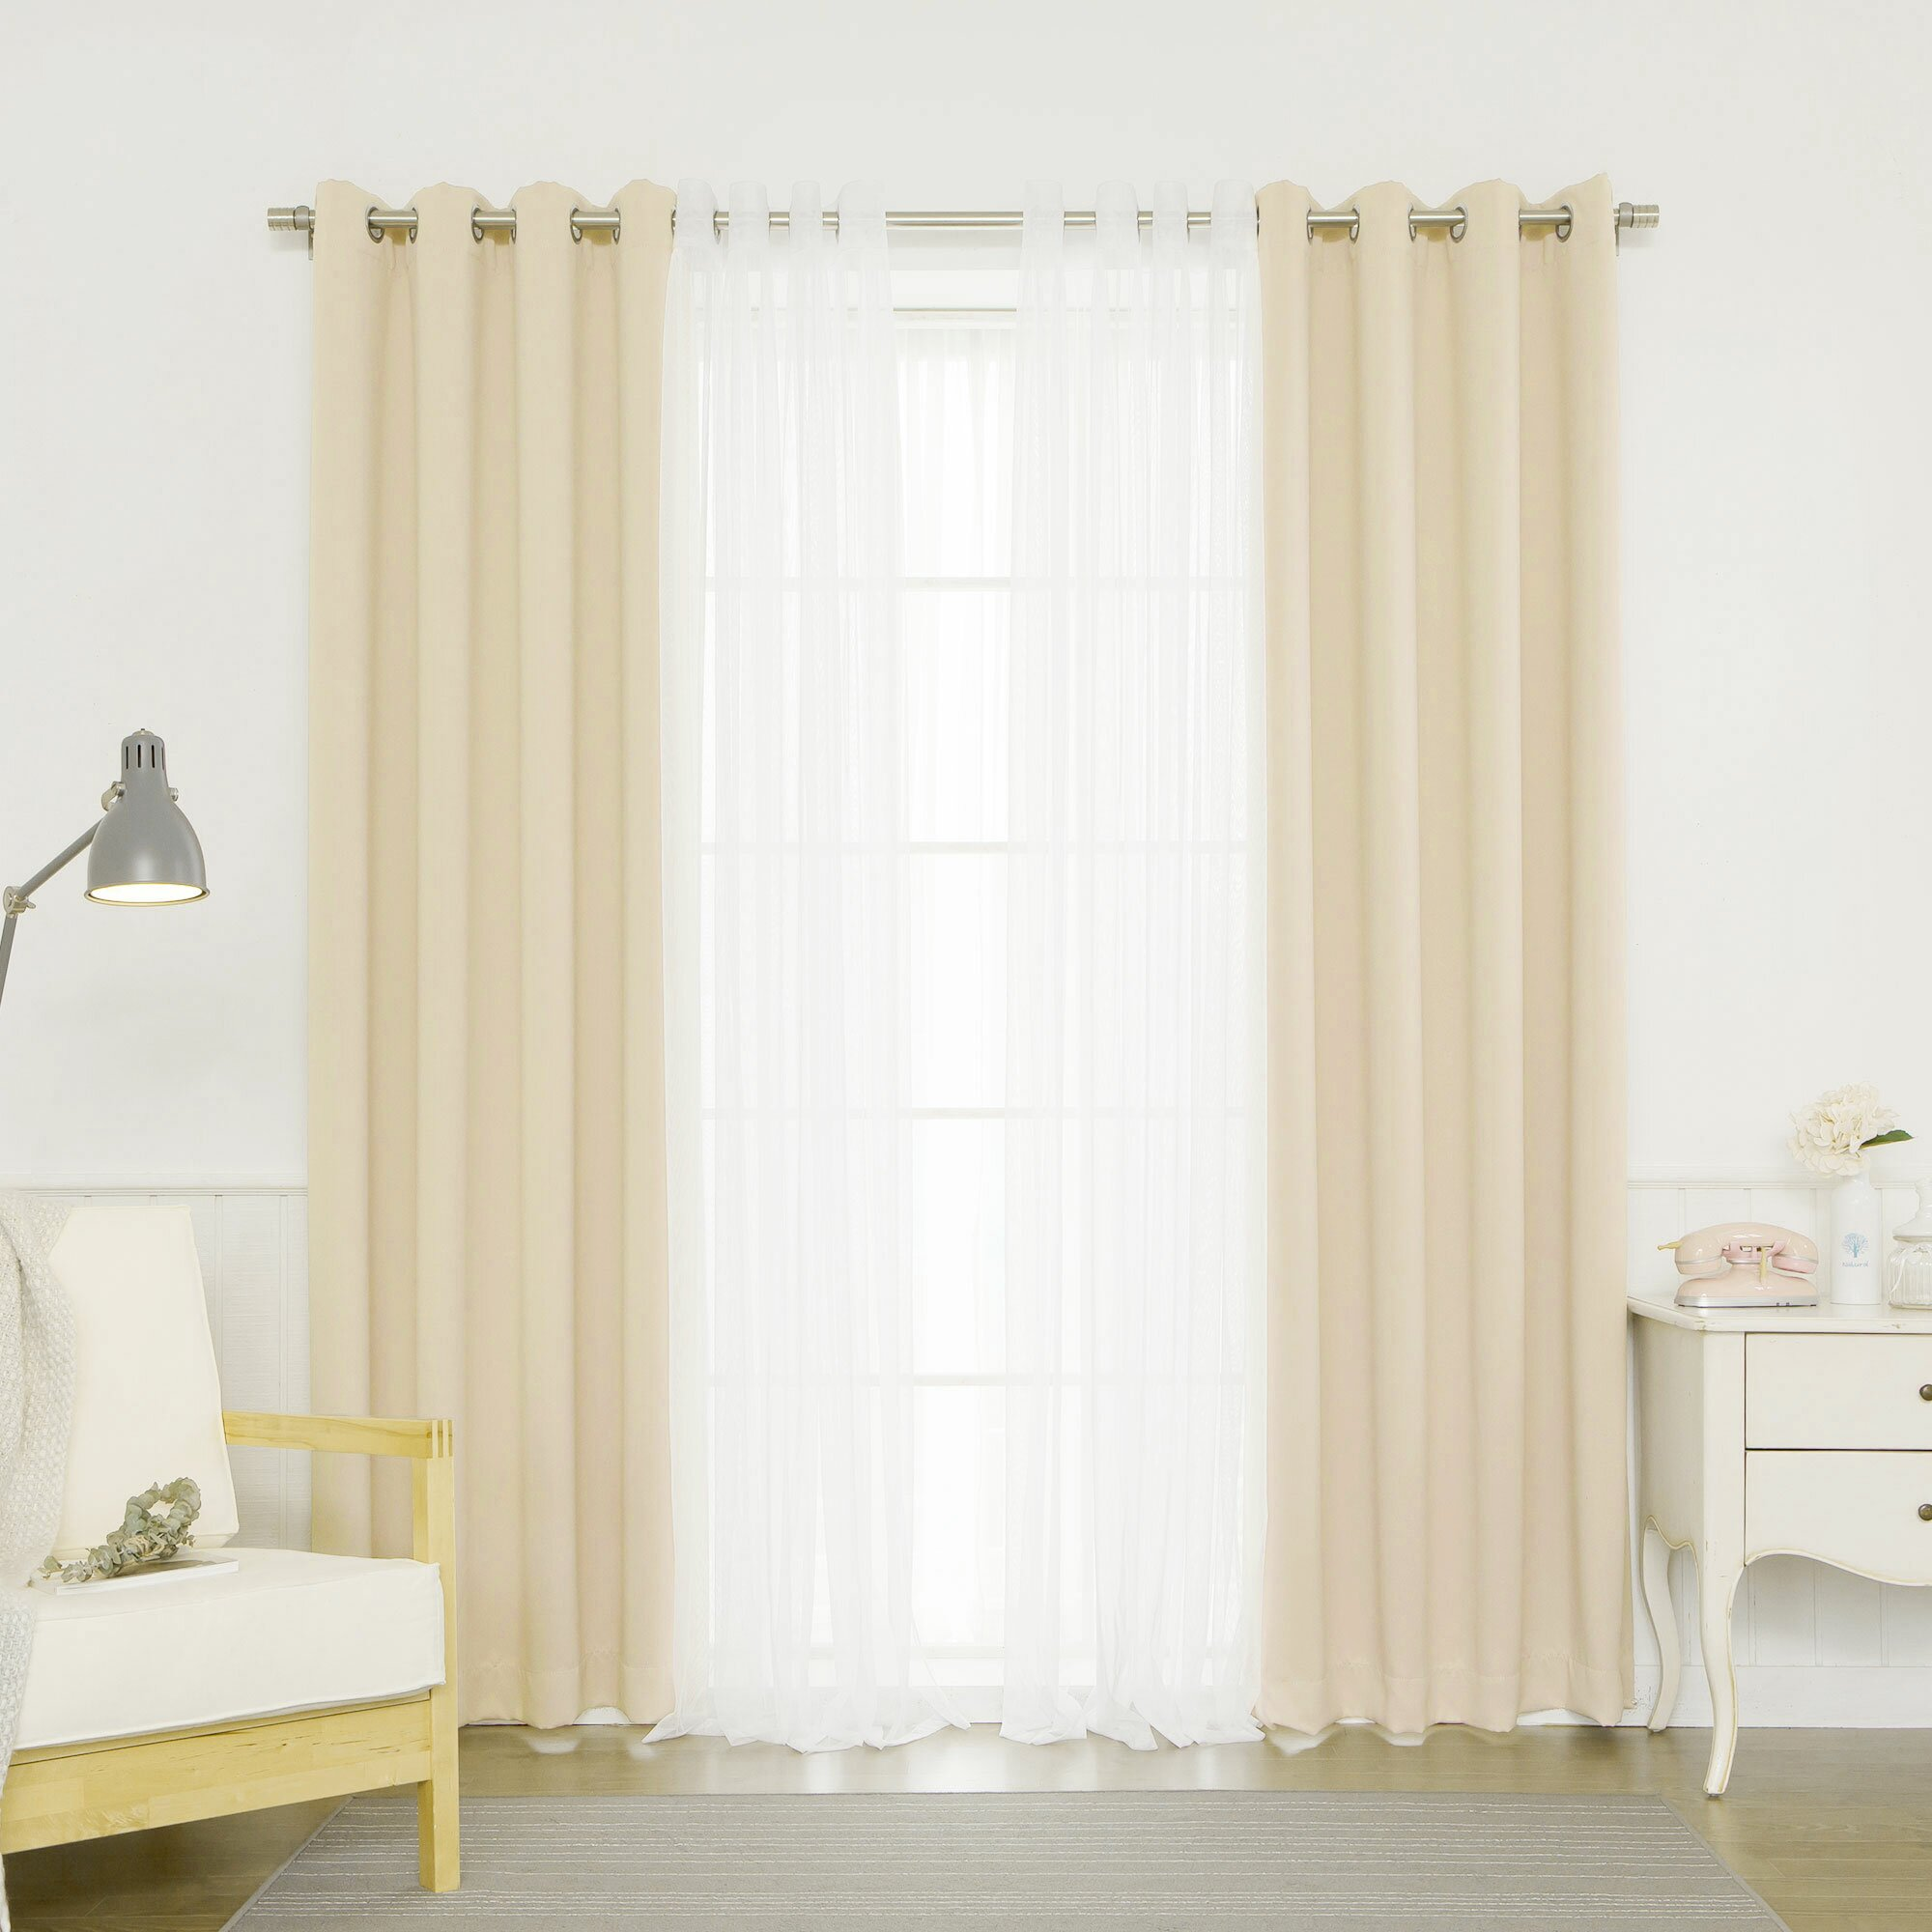 Mix match curtain panel wayfair for Mix and match curtains colors